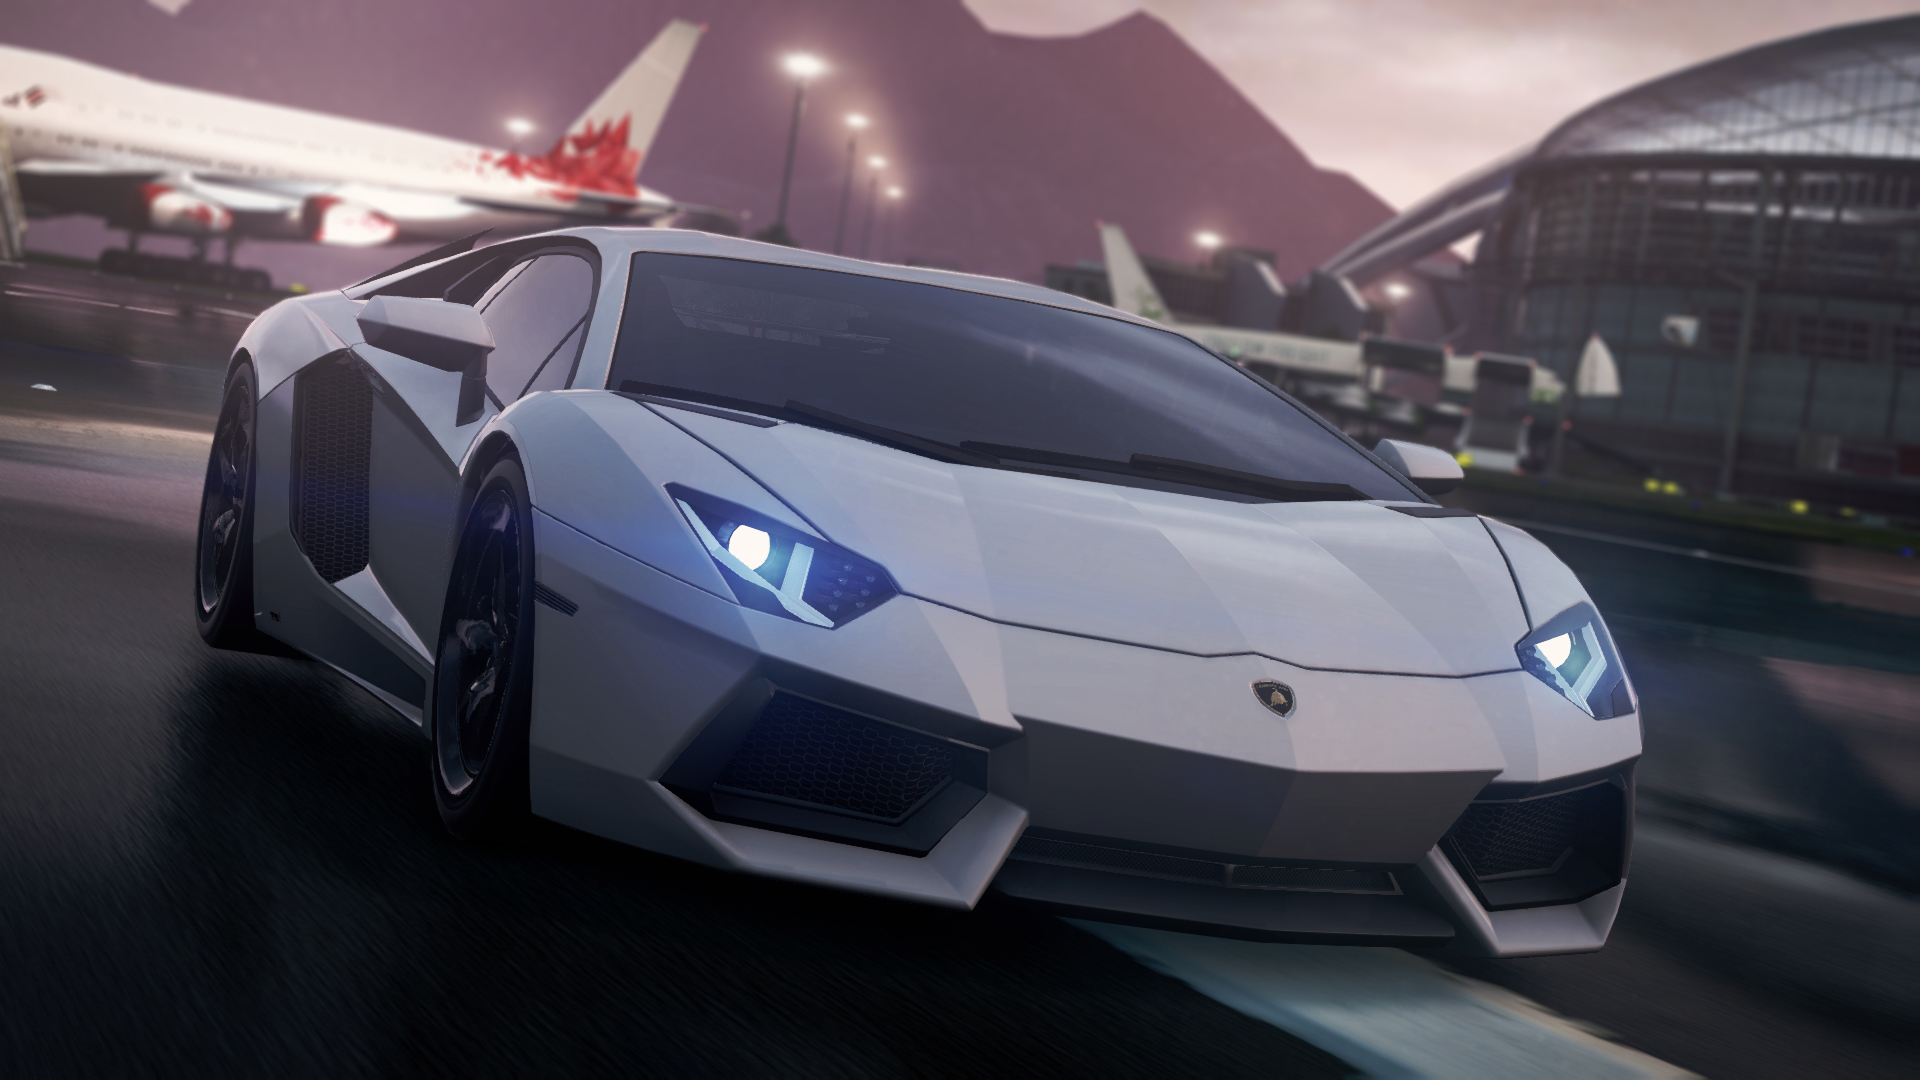 Nfs Most Wanted 2 Cars Wallpapers Lamborghini Aventador Lp700 4 Full Hd Wallpaper And